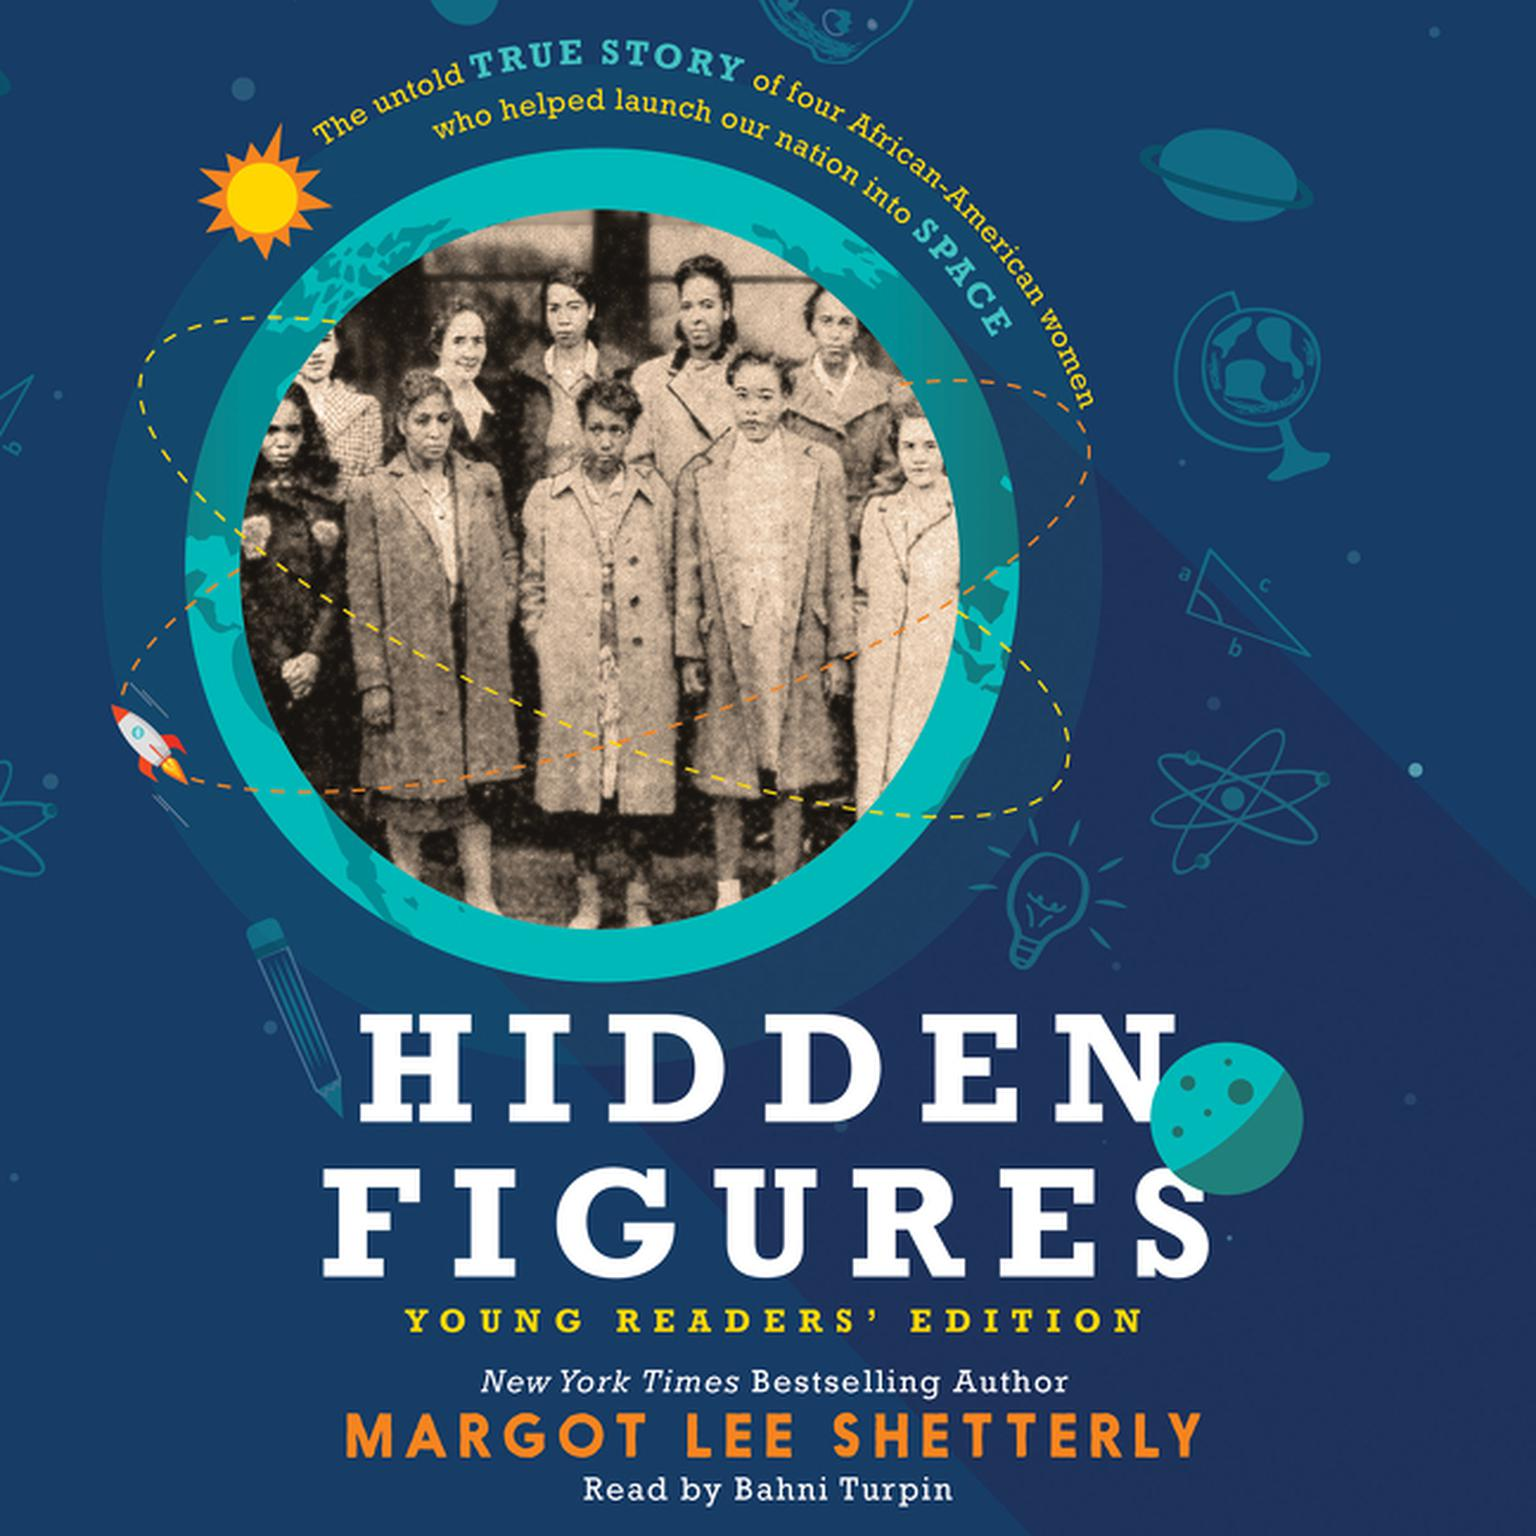 Printable Hidden Figures Young Readers' Edition Audiobook Cover Art